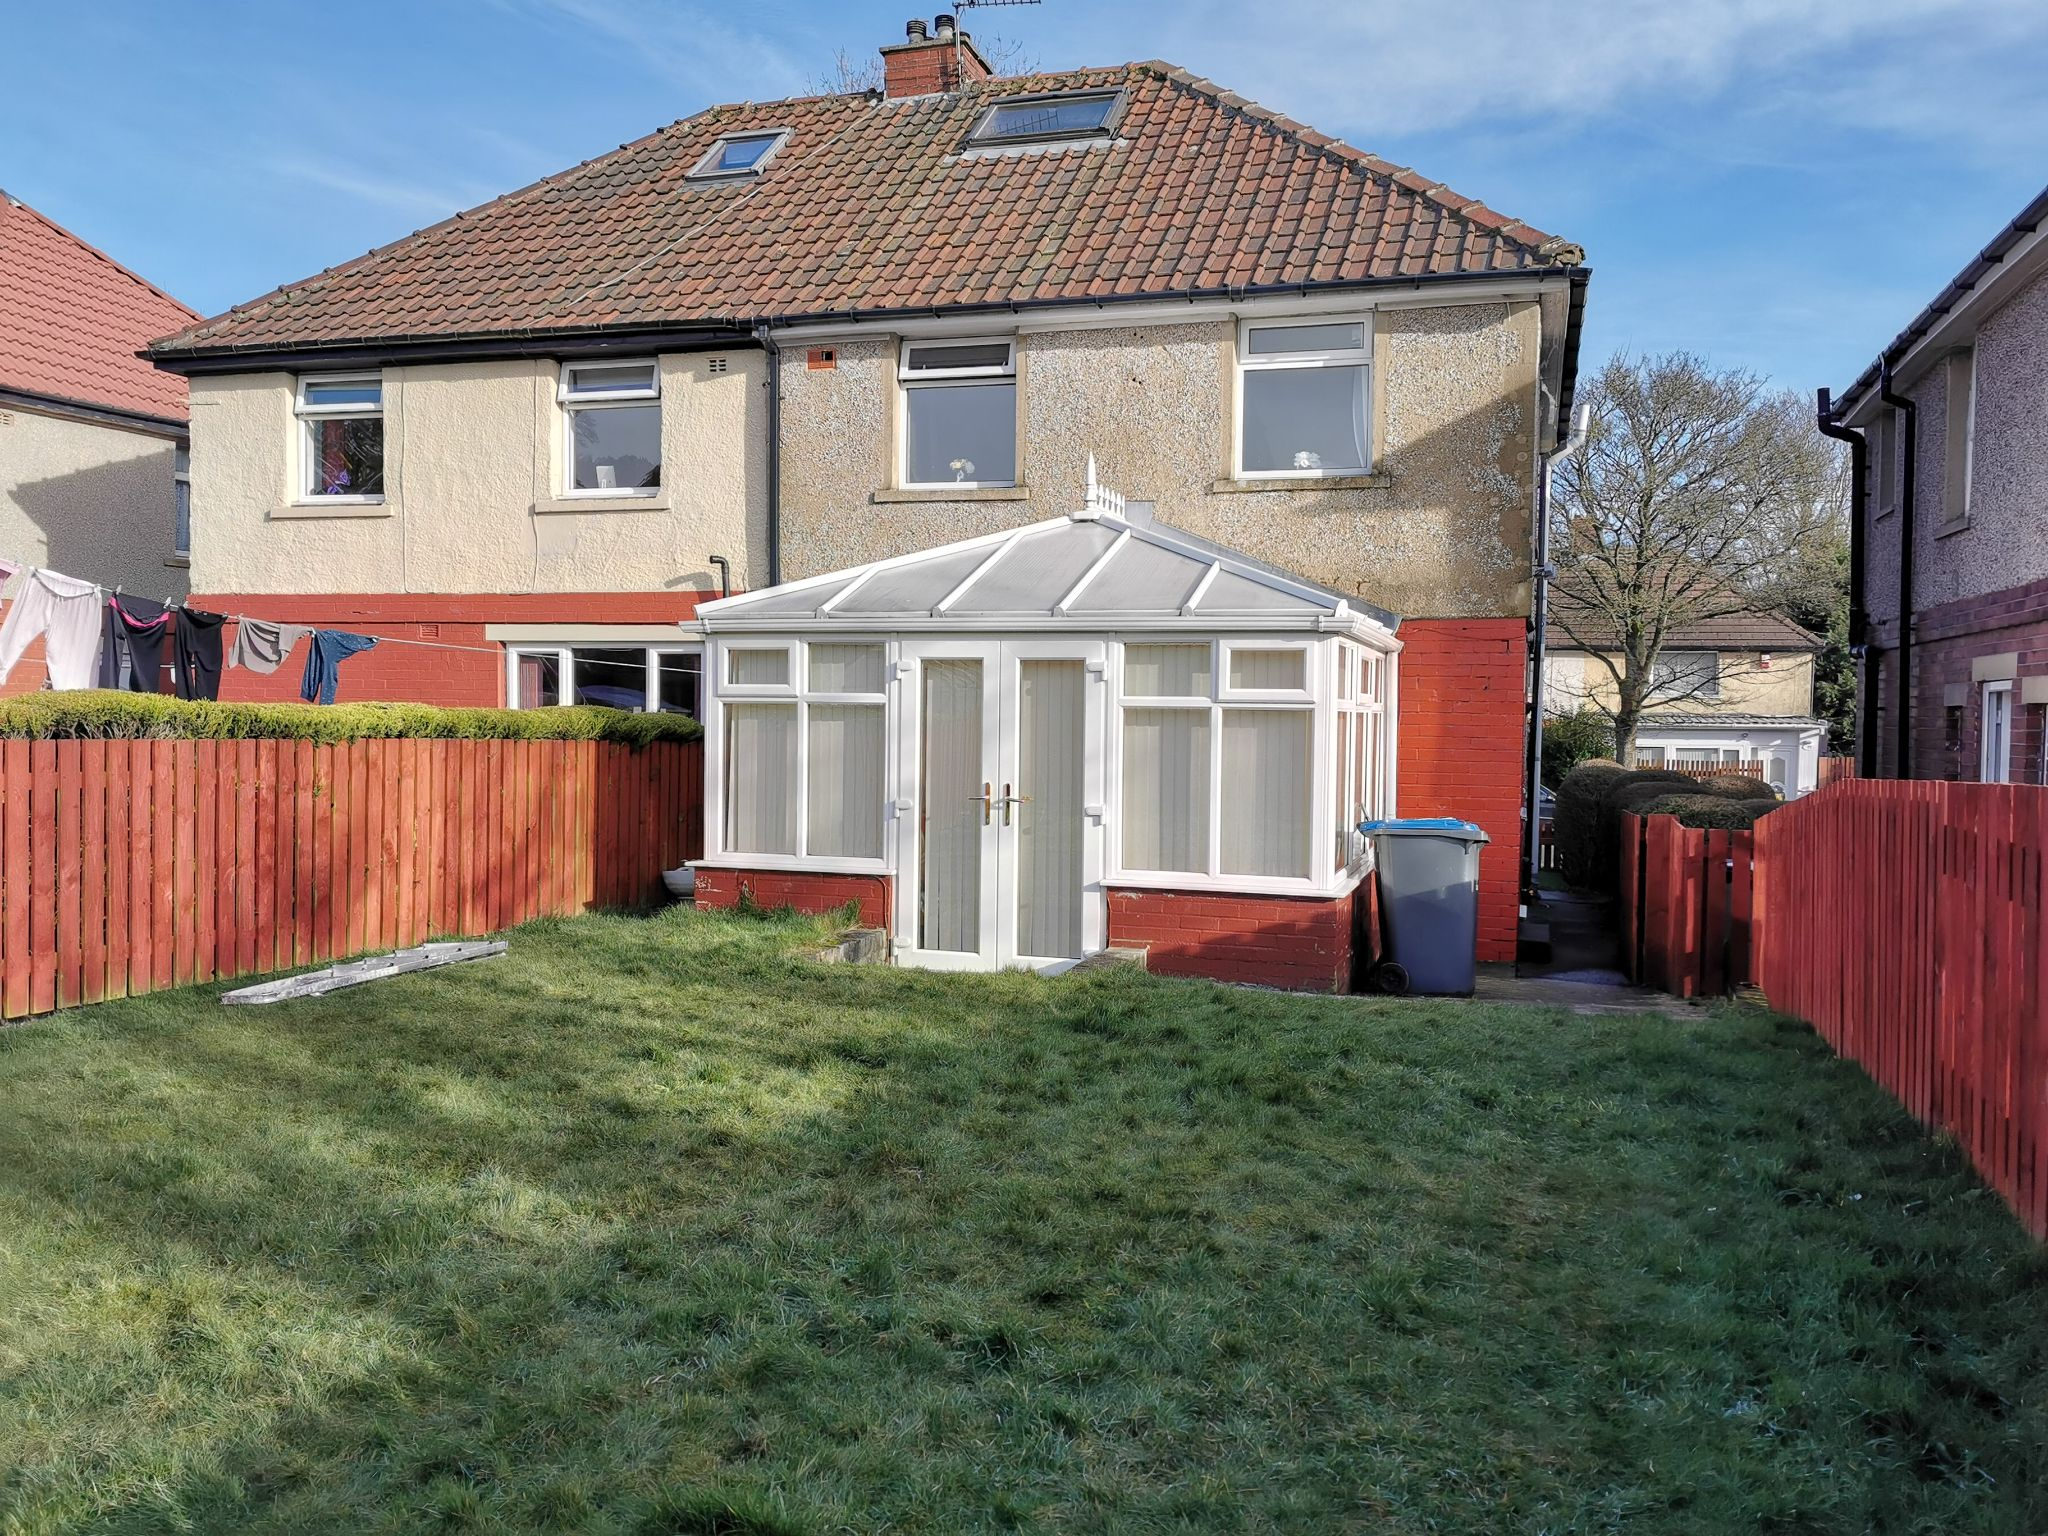 3 bedroom semi-detached house in Bradford - Photograph 23.